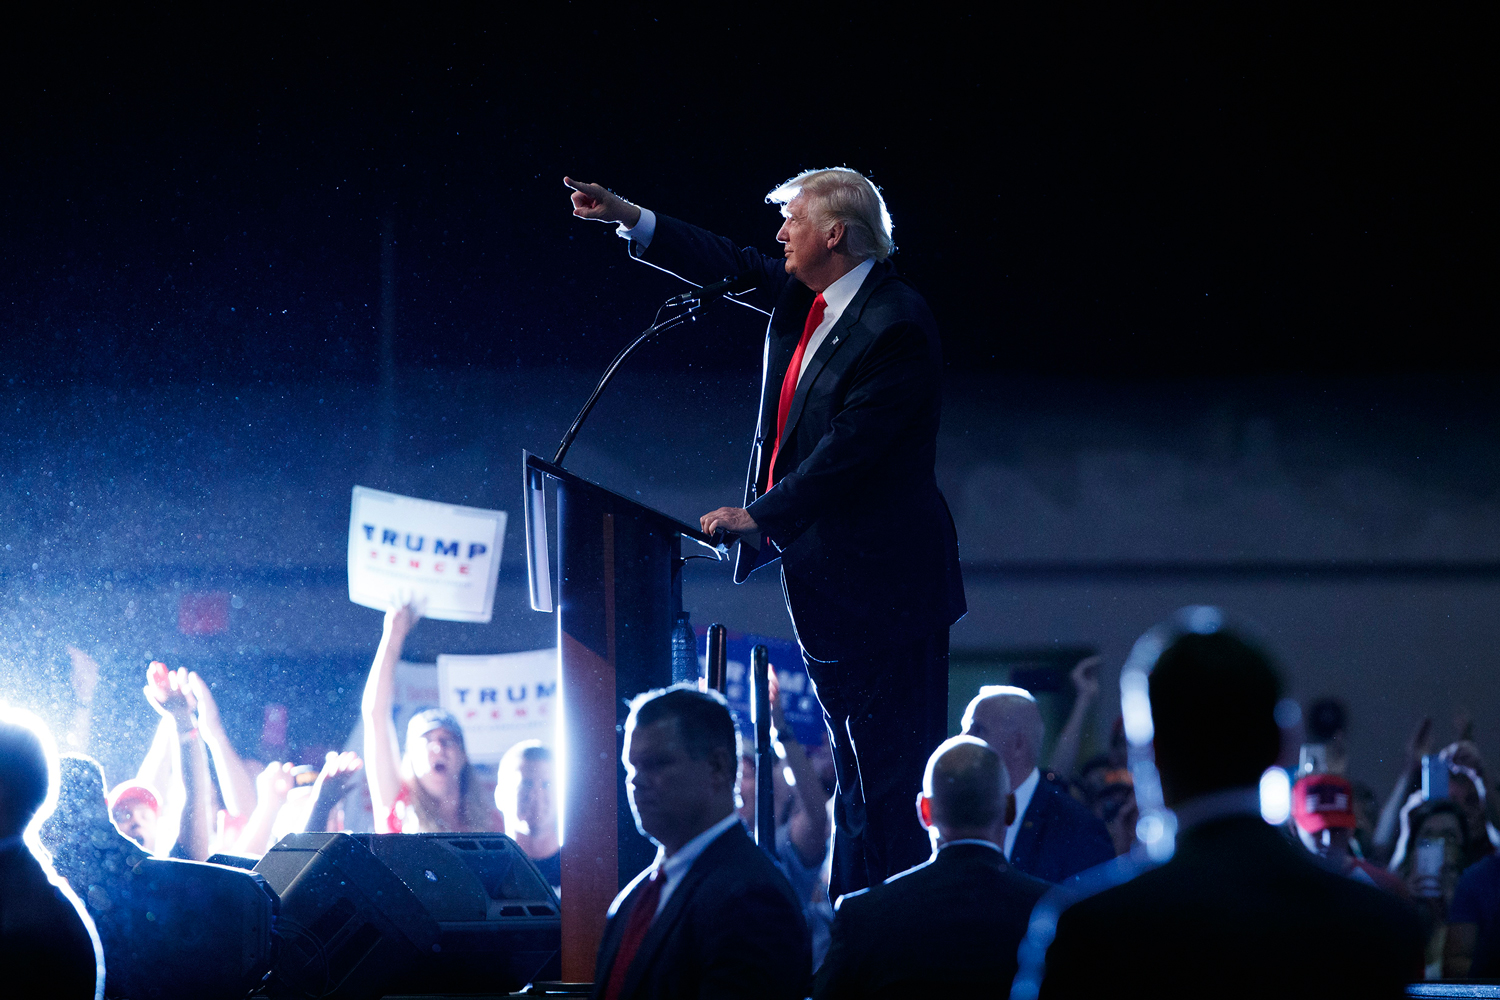 Republican presidential candidate Donald Trump speaks during a campaign town hall at Ocean Center in Daytona Beach, Fla., on Aug. 3, 2016.